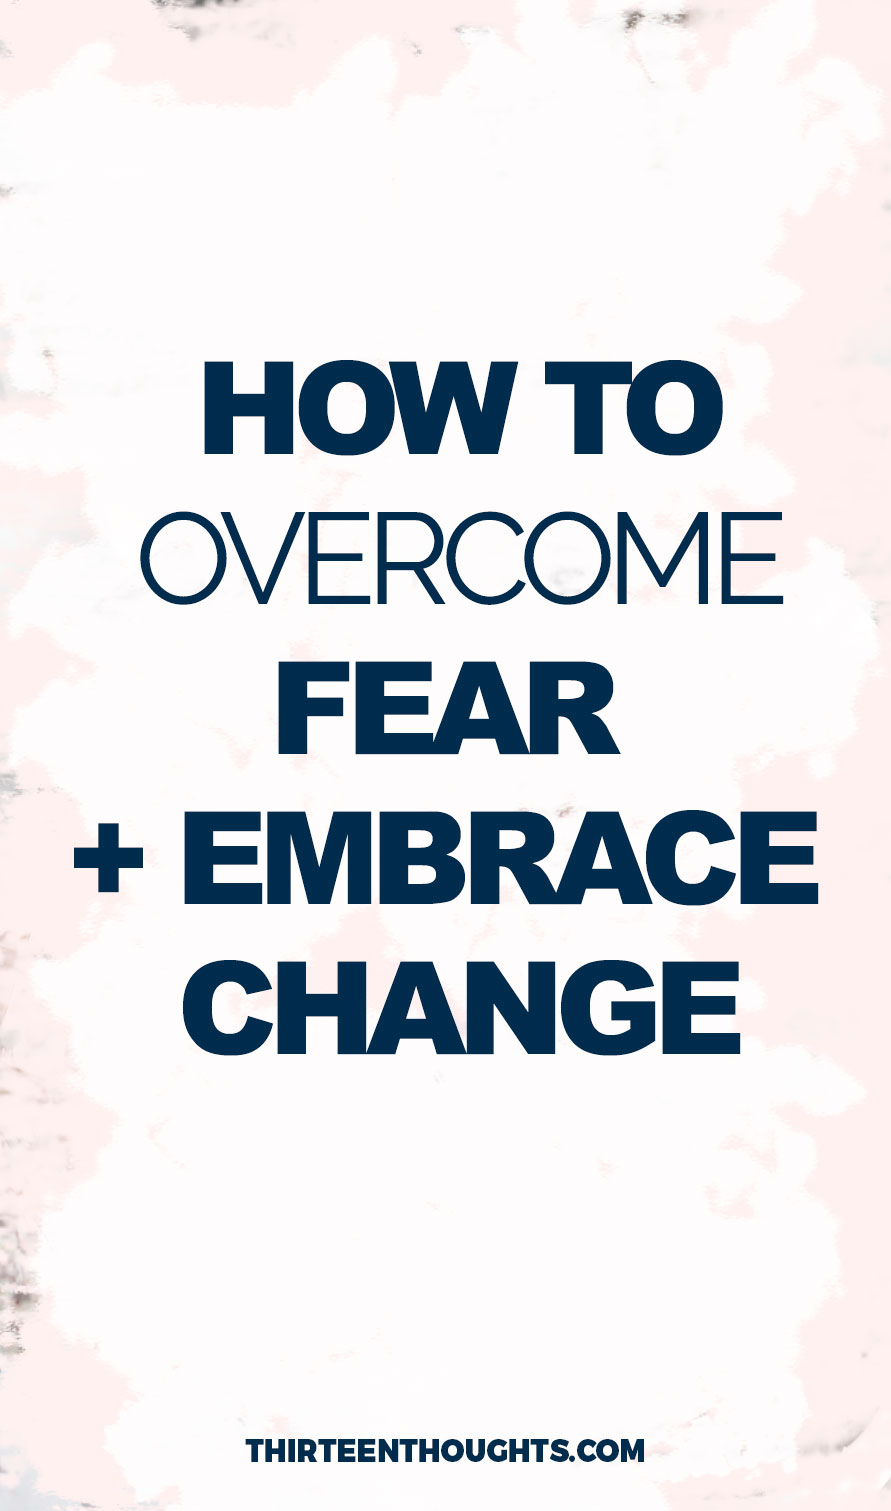 On Overcoming Fear + Embracing Change